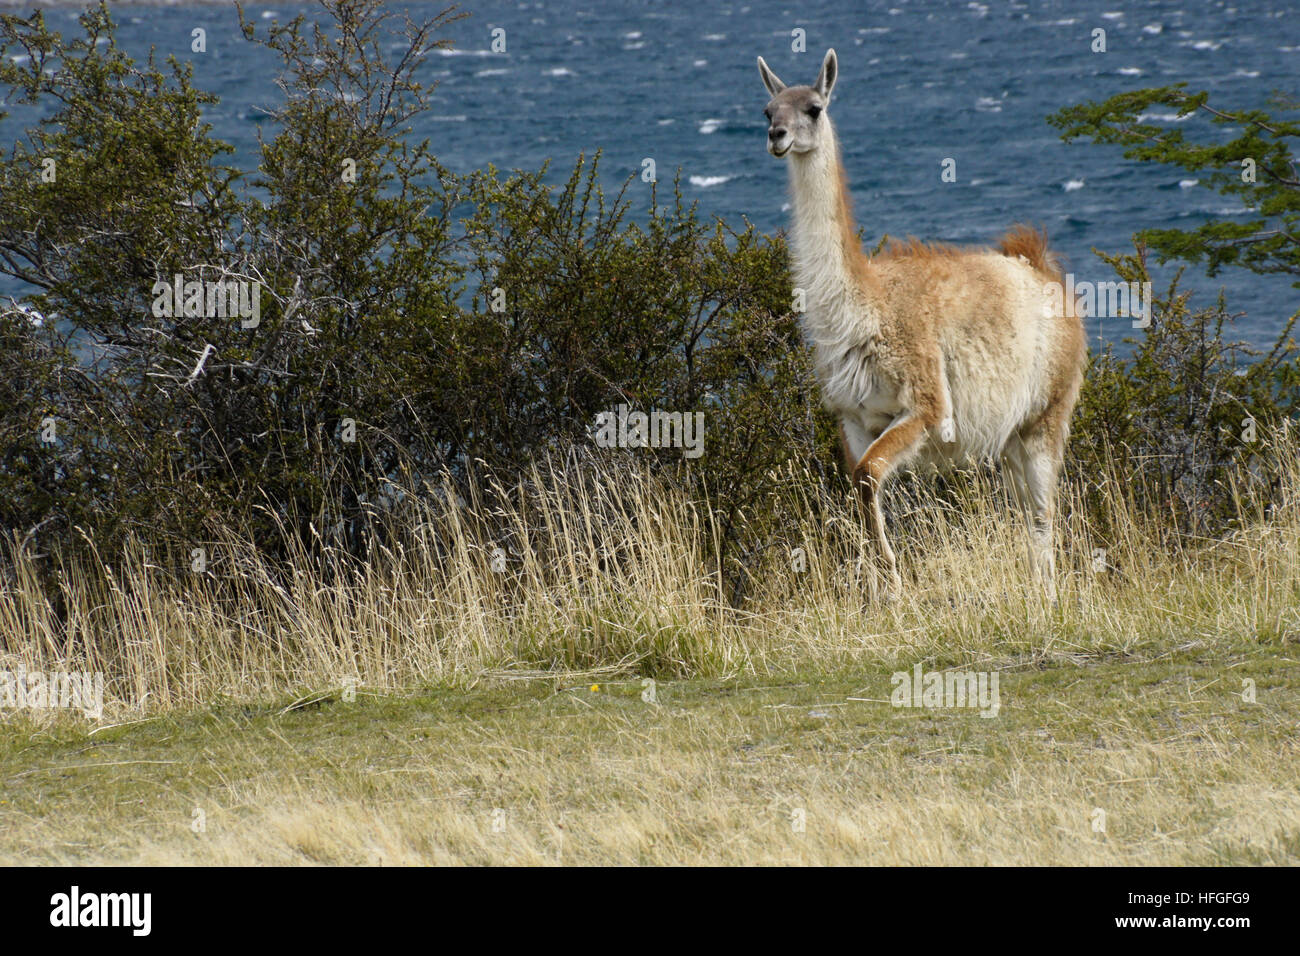 Guanaco near Laguna Azul, Torres del Paine NP, Patagonia, Chile - Stock Image